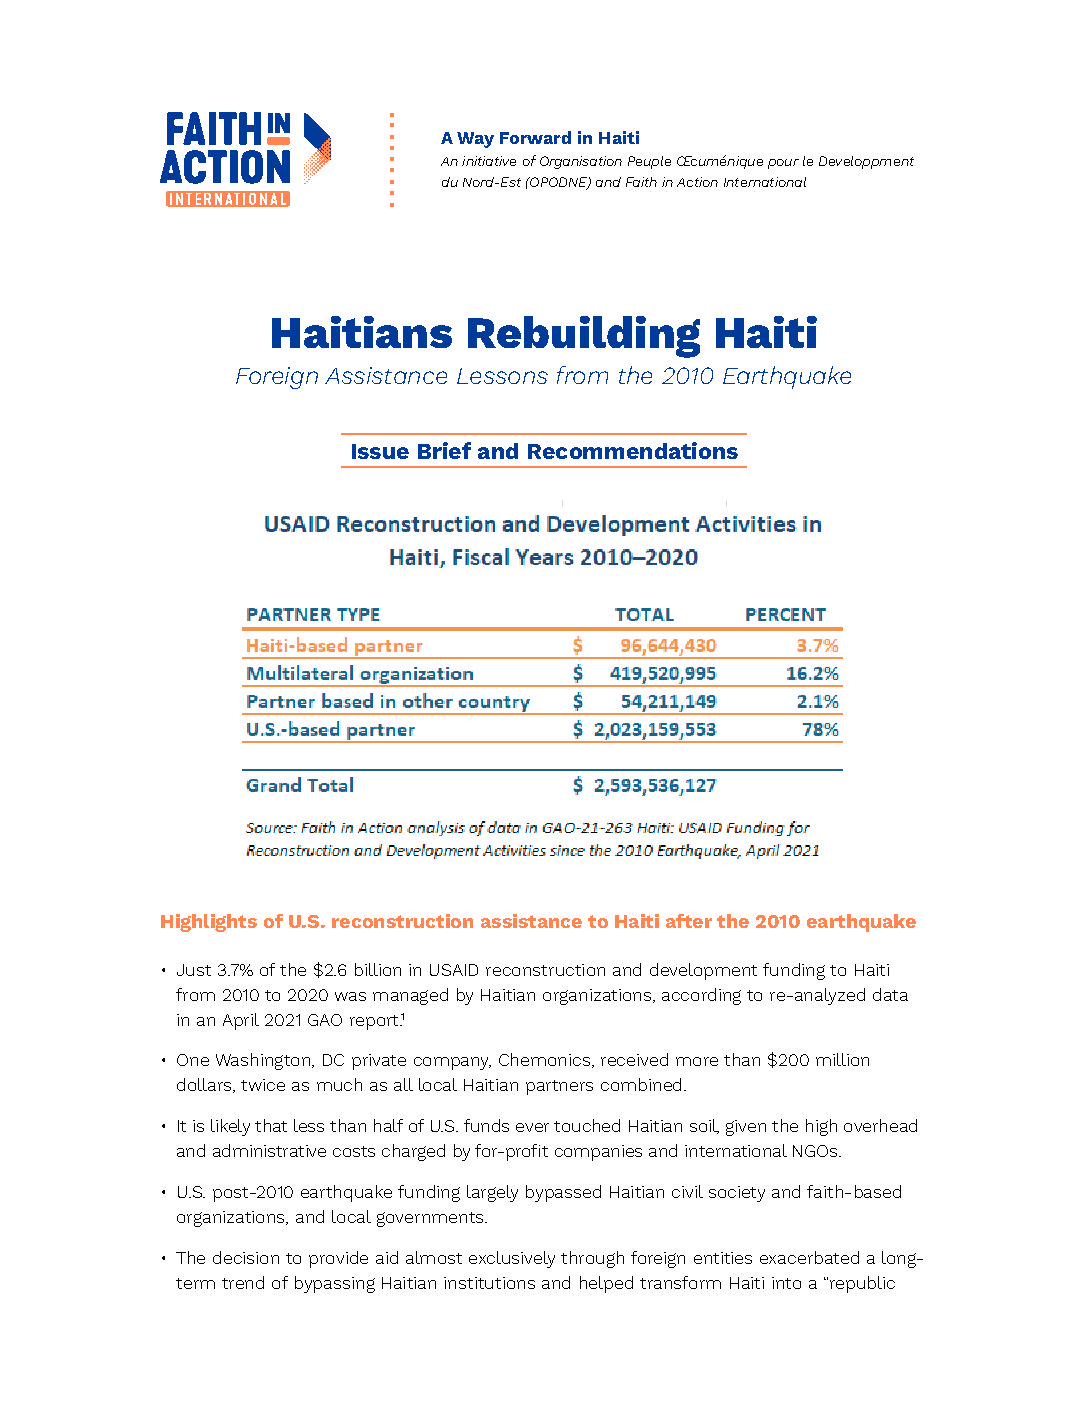 Haitians Rebuilding Haiti:  Foreign Assistance Lessons From The 2010 Earthquake